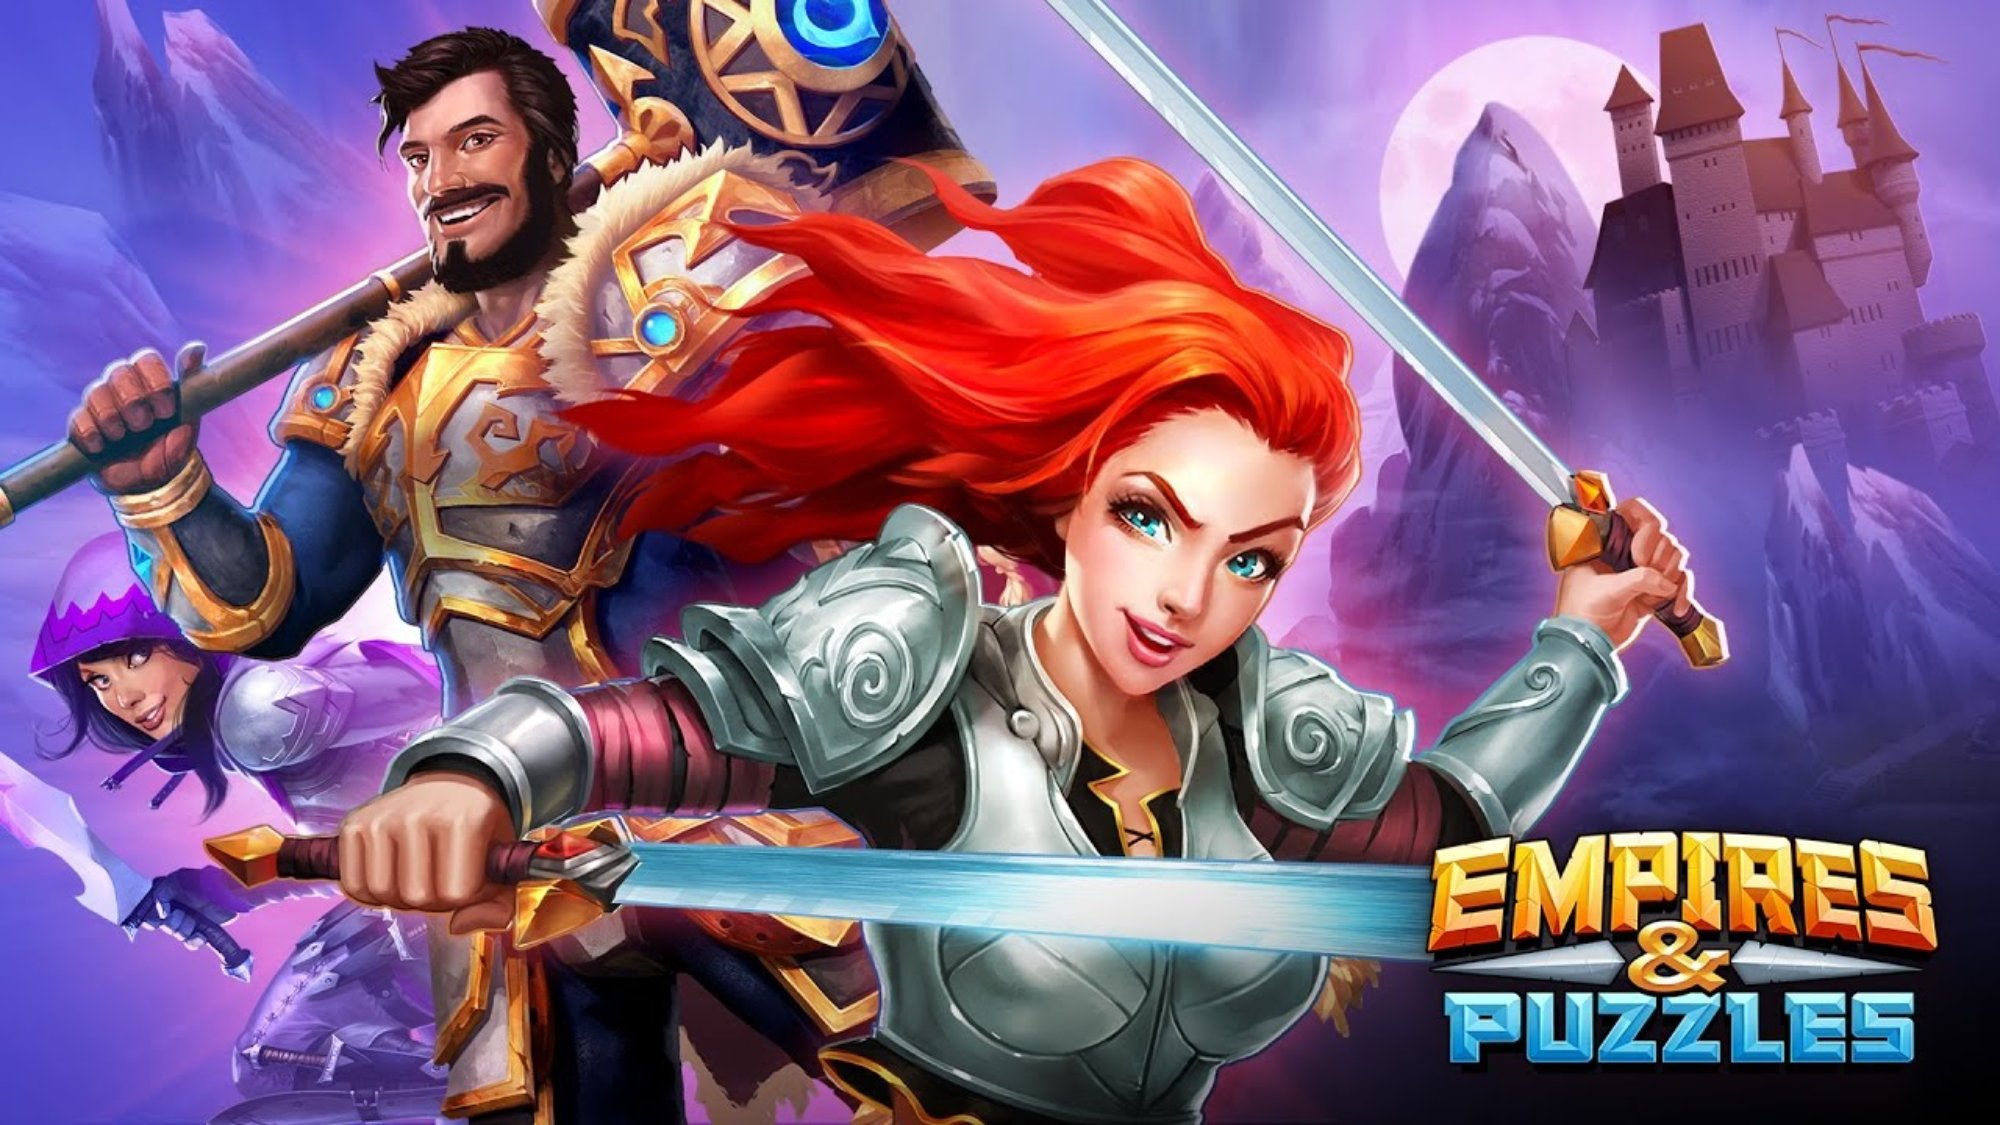 Screenshot of a mobile game cover